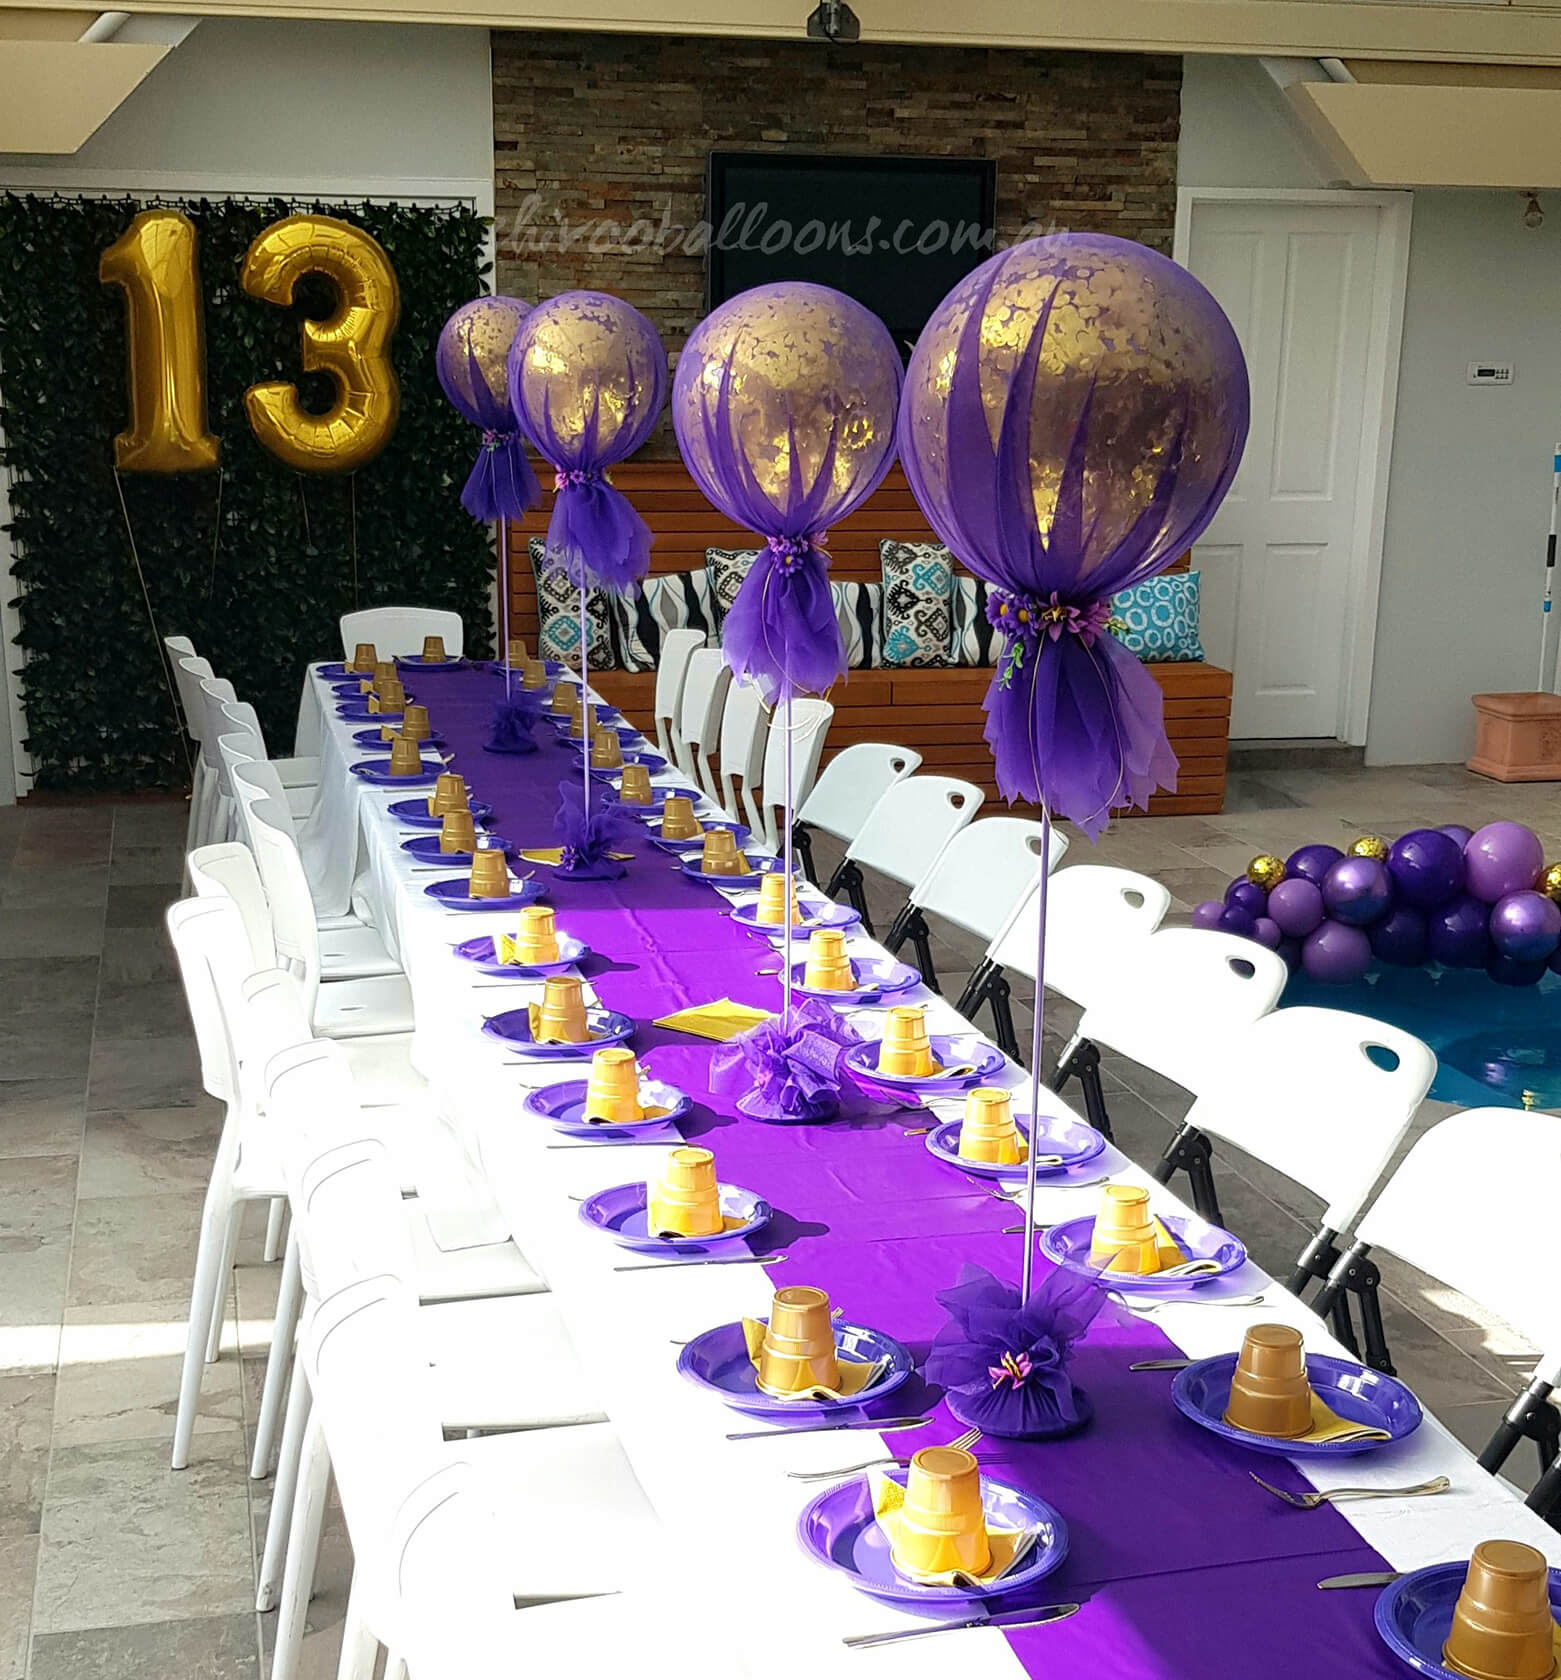 CE-50 - corporate - corporate event decor ideas - shivoo balloons and decor specialists in coburg north